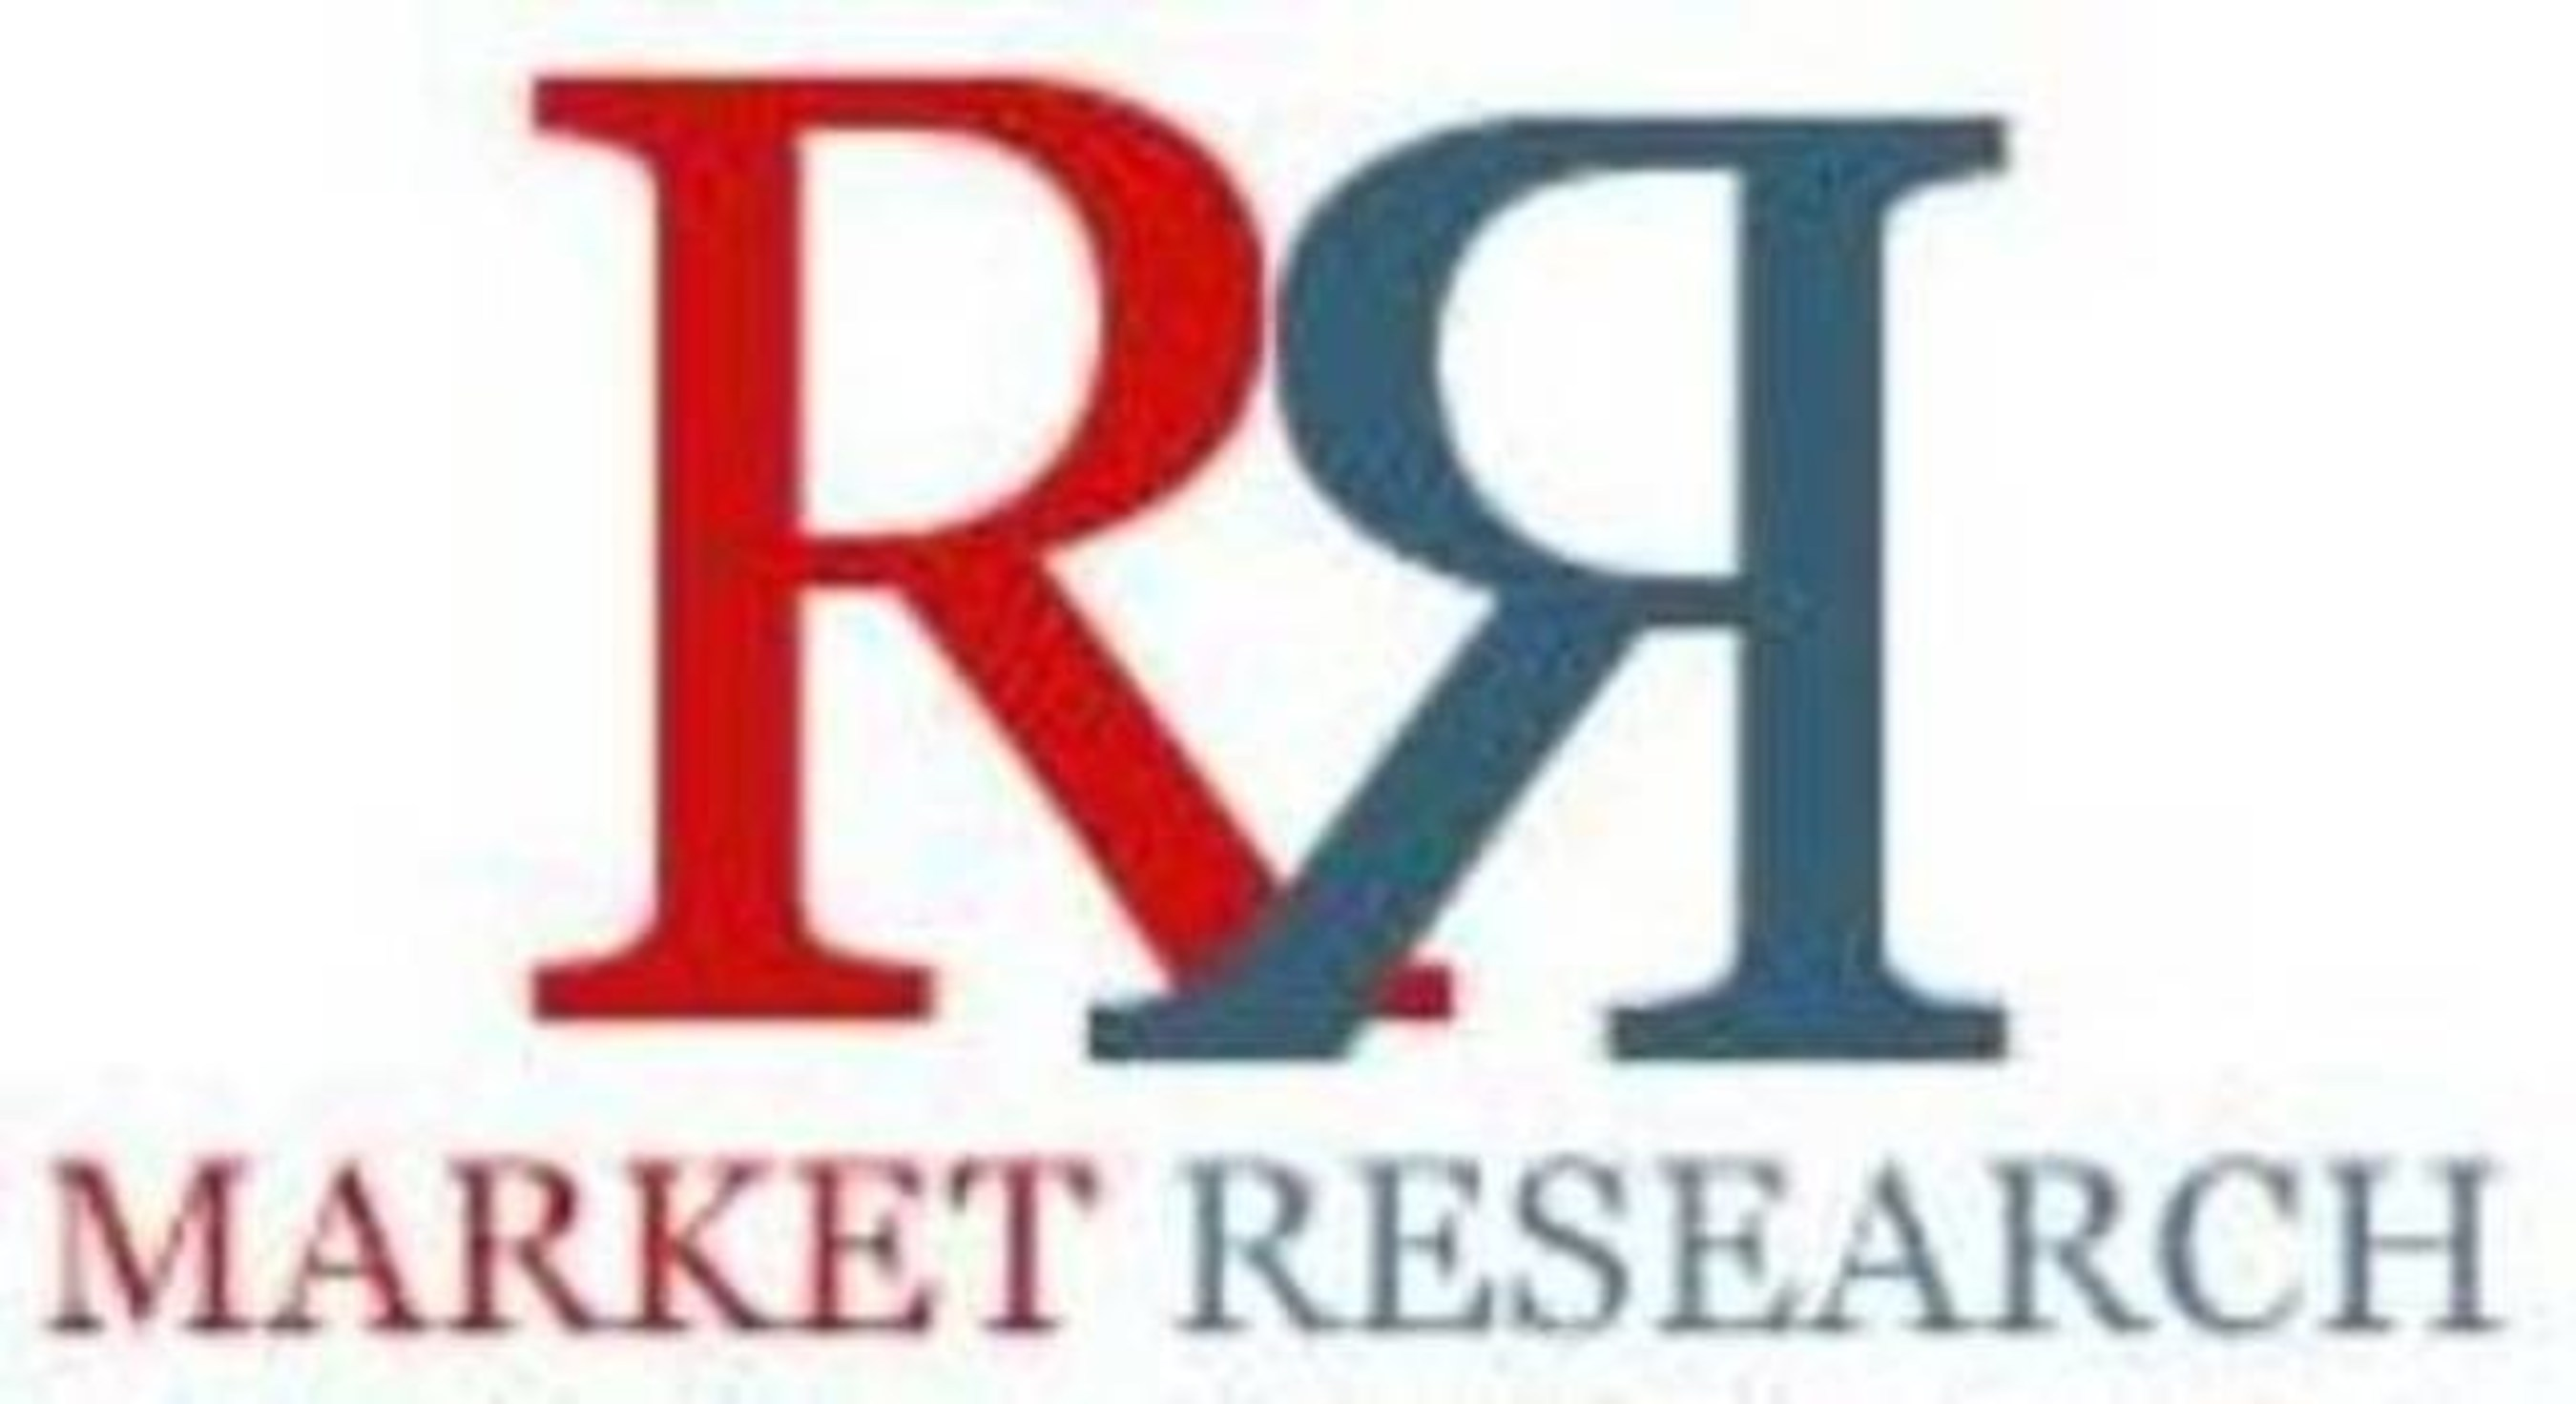 PTC Thermistor Market 2020 Forecasts for Global (US, Europe, Japan, China) Regions